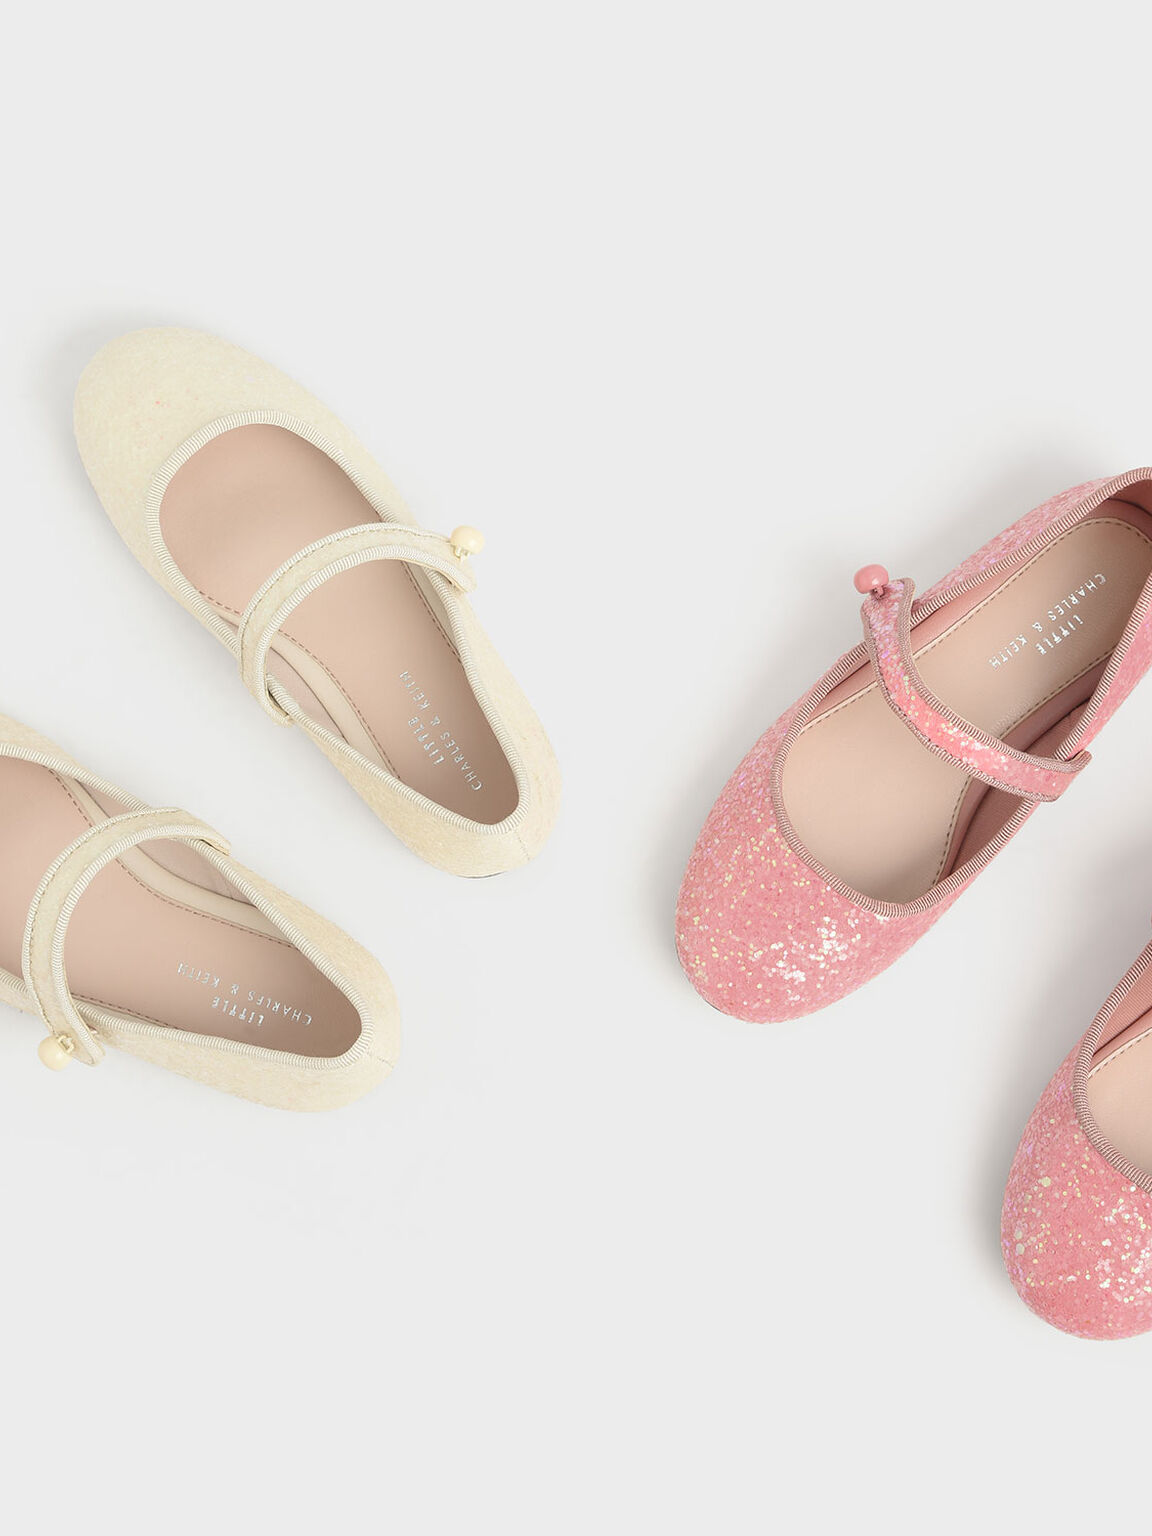 Girls' Glitter Mary Jane Flats, Beige, hi-res